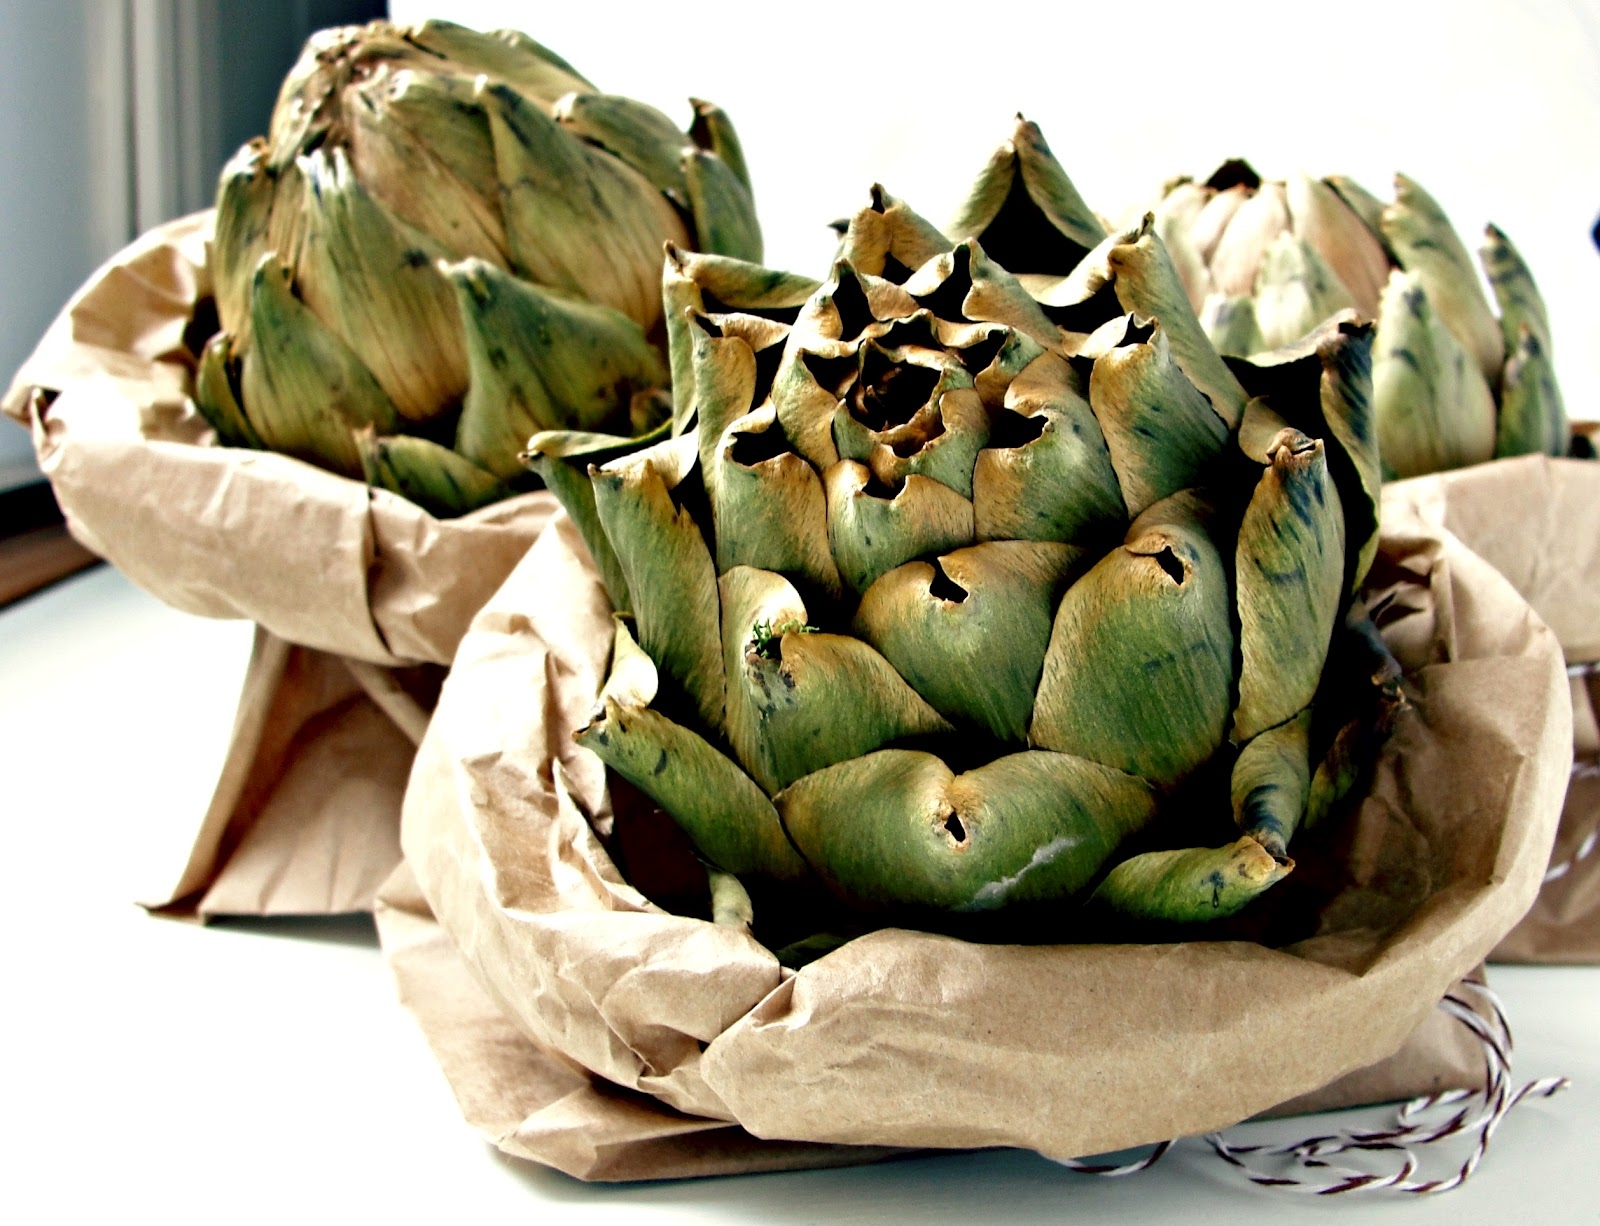 Putting down roots diy dried artichokes for Artichoke decoration